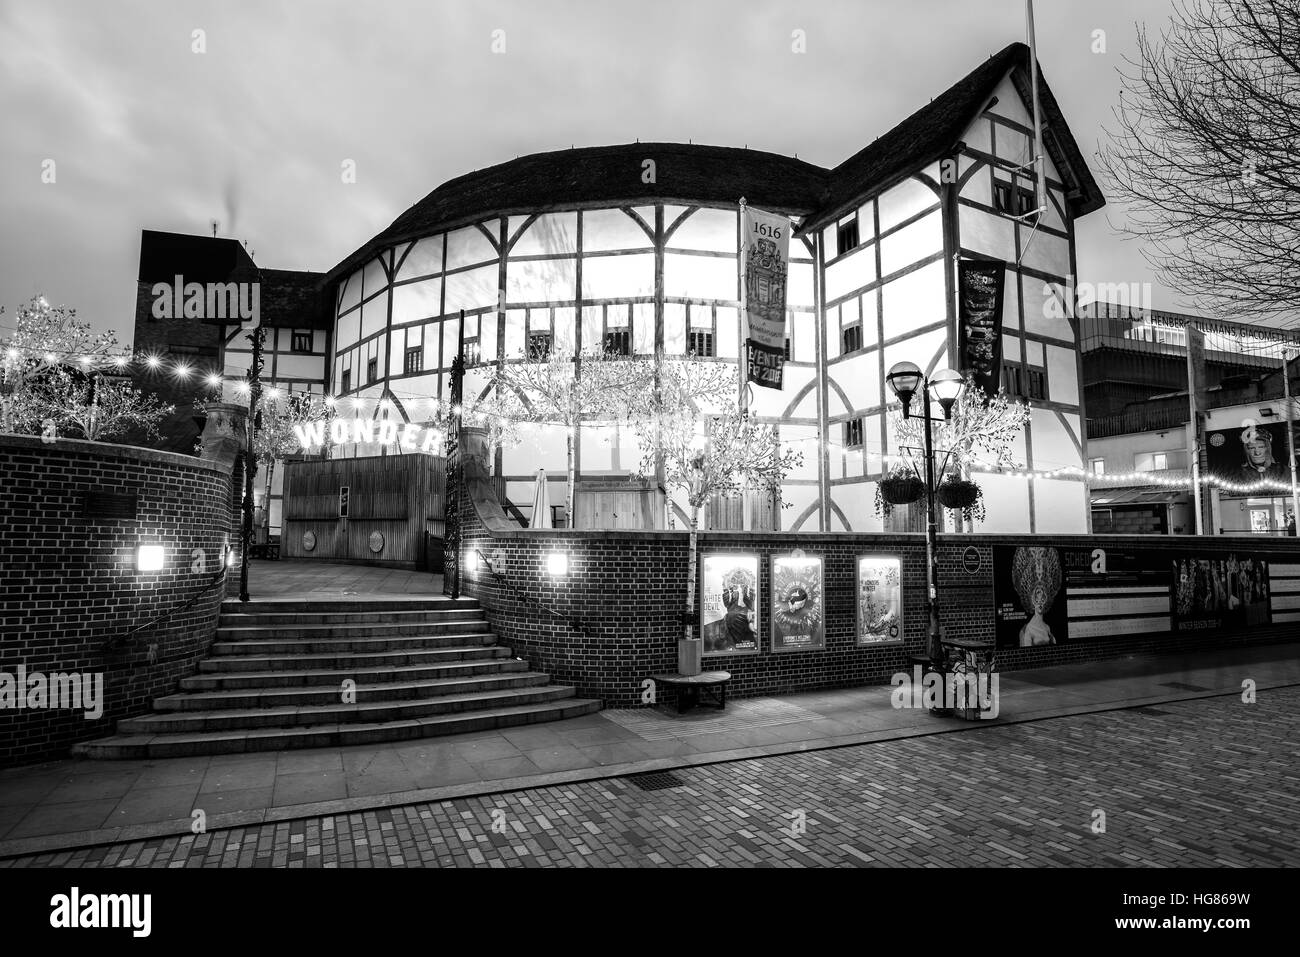 Globe theatre on the south bank of the rive Thames,  London. - Stock Image